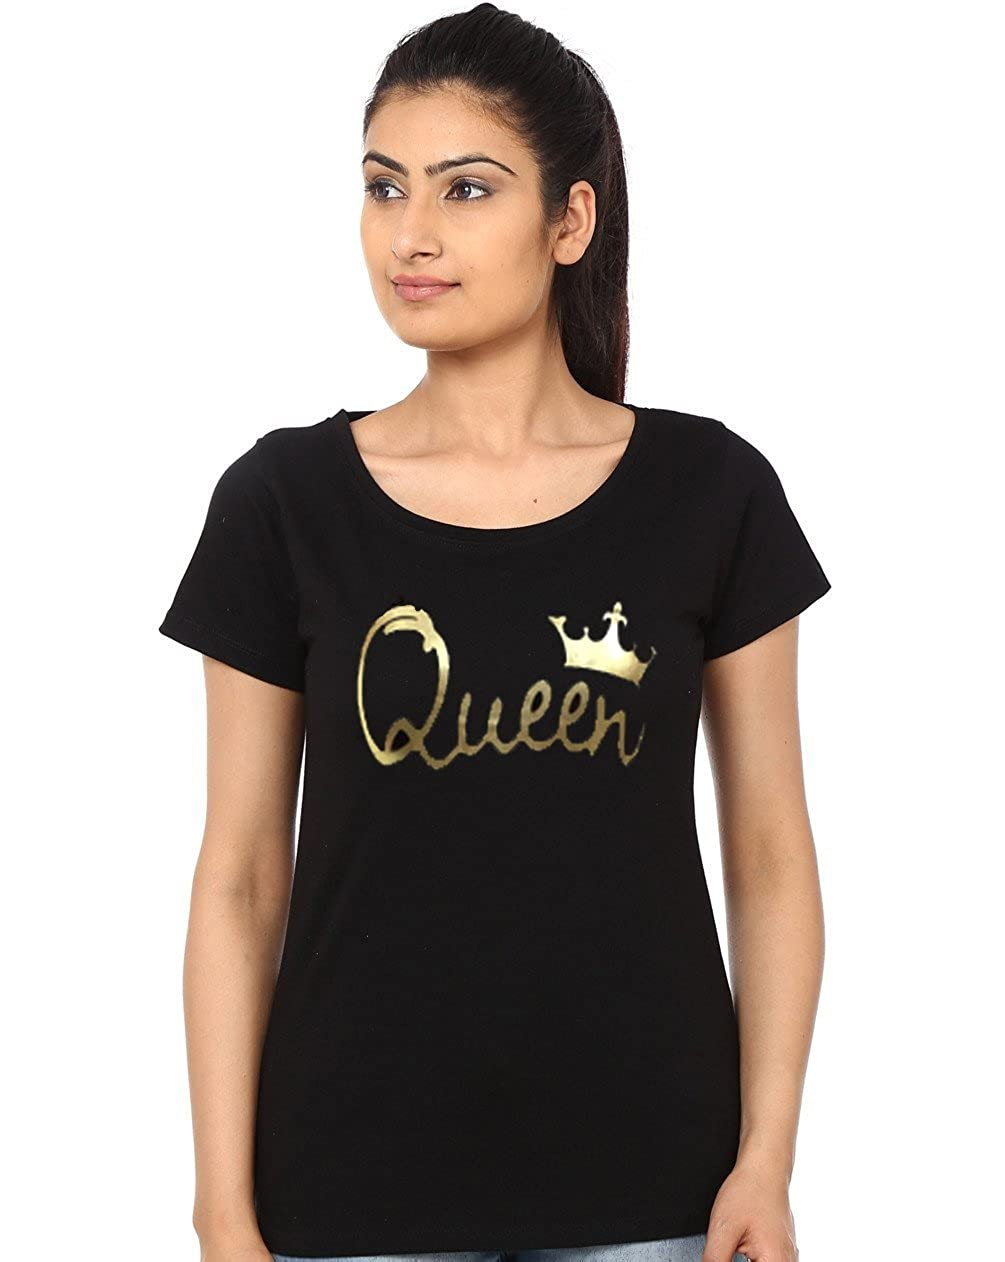 398ea84af1 ADYK Women's Half Sleeves Queen T-Shirt: Amazon.in: Clothing & Accessories